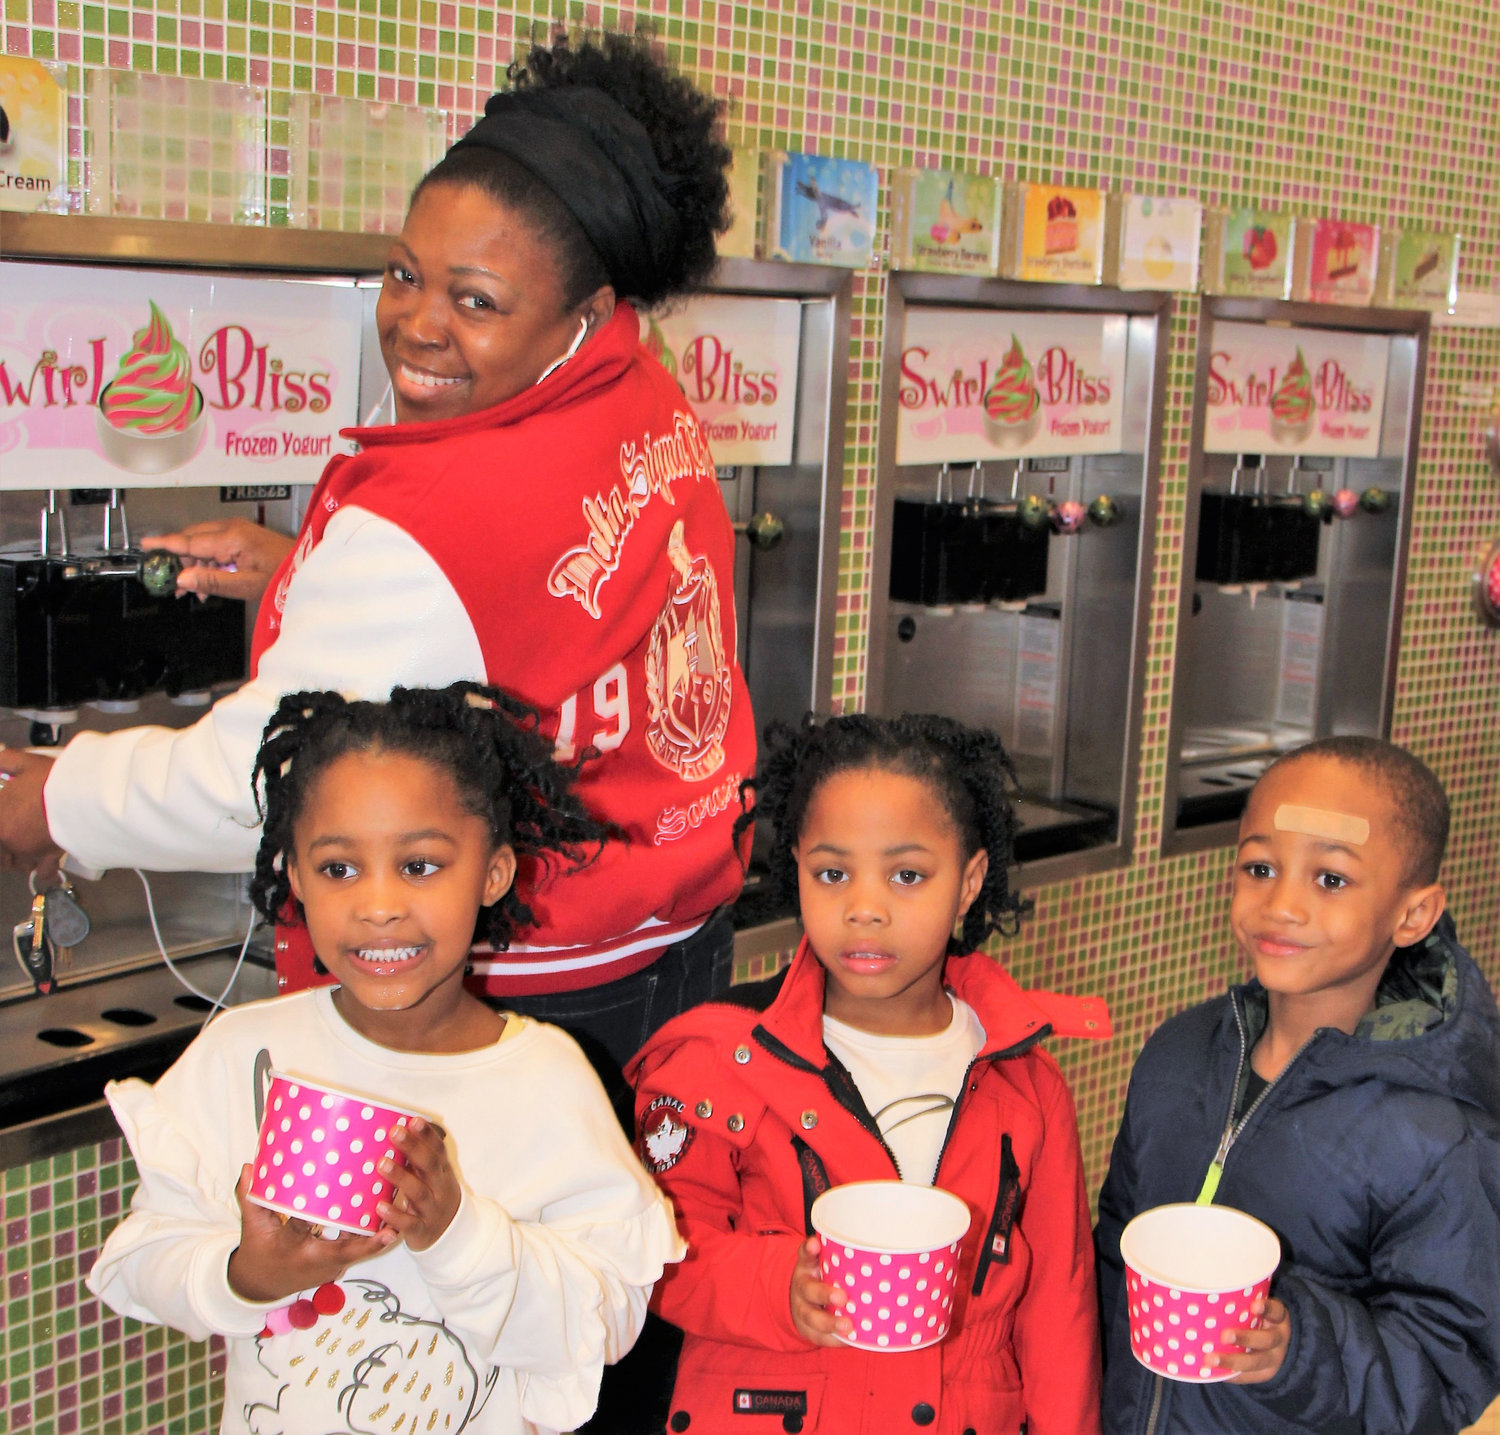 Keria Blue treated herself to frozen yogurt alongside Kayden McNeal and Mia and Madison Goodwin.